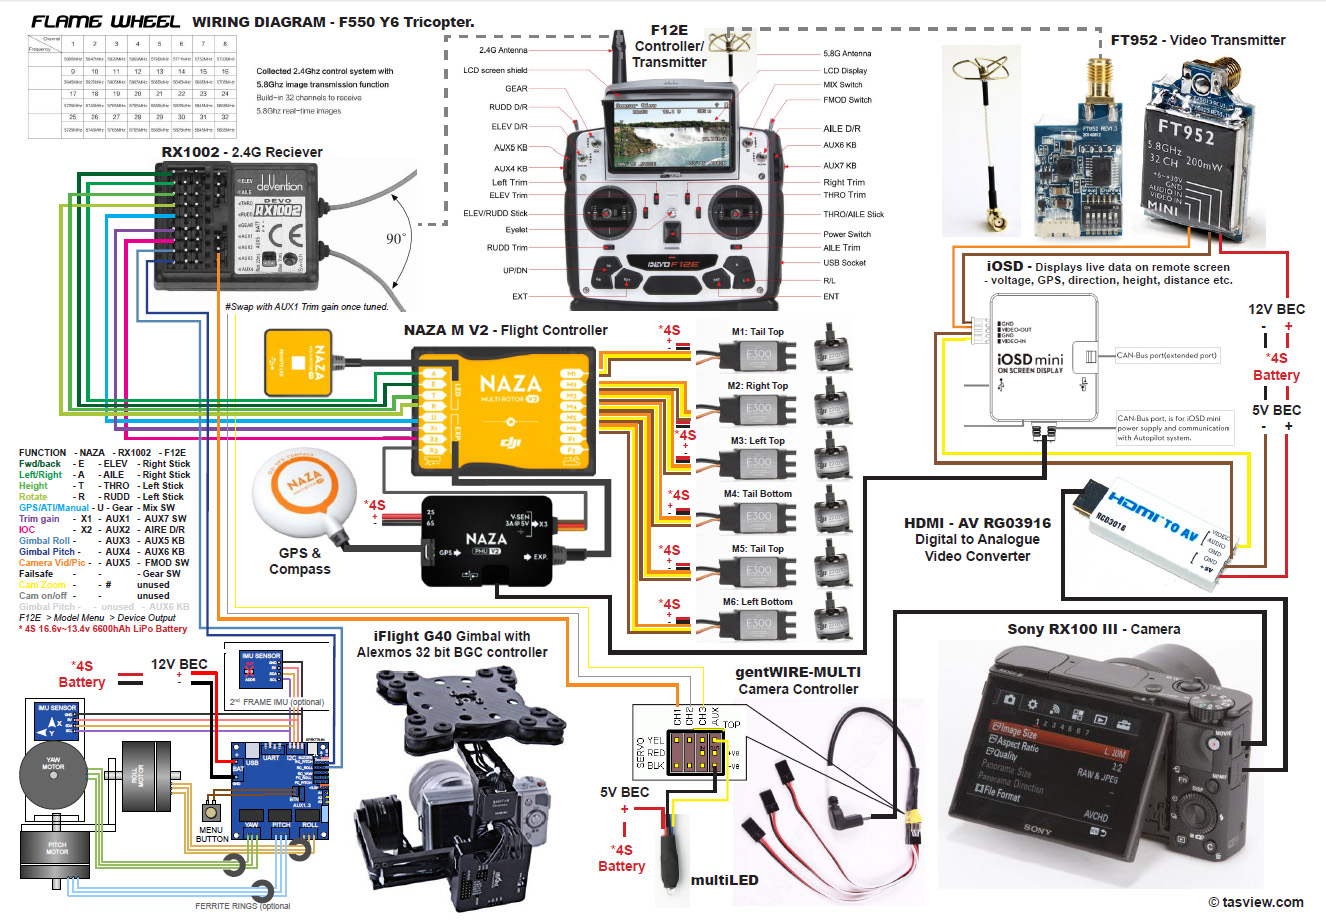 wiring_diagram f550y6 naza v2 wiring diagram diagram wiring diagrams for diy car repairs  at eliteediting.co